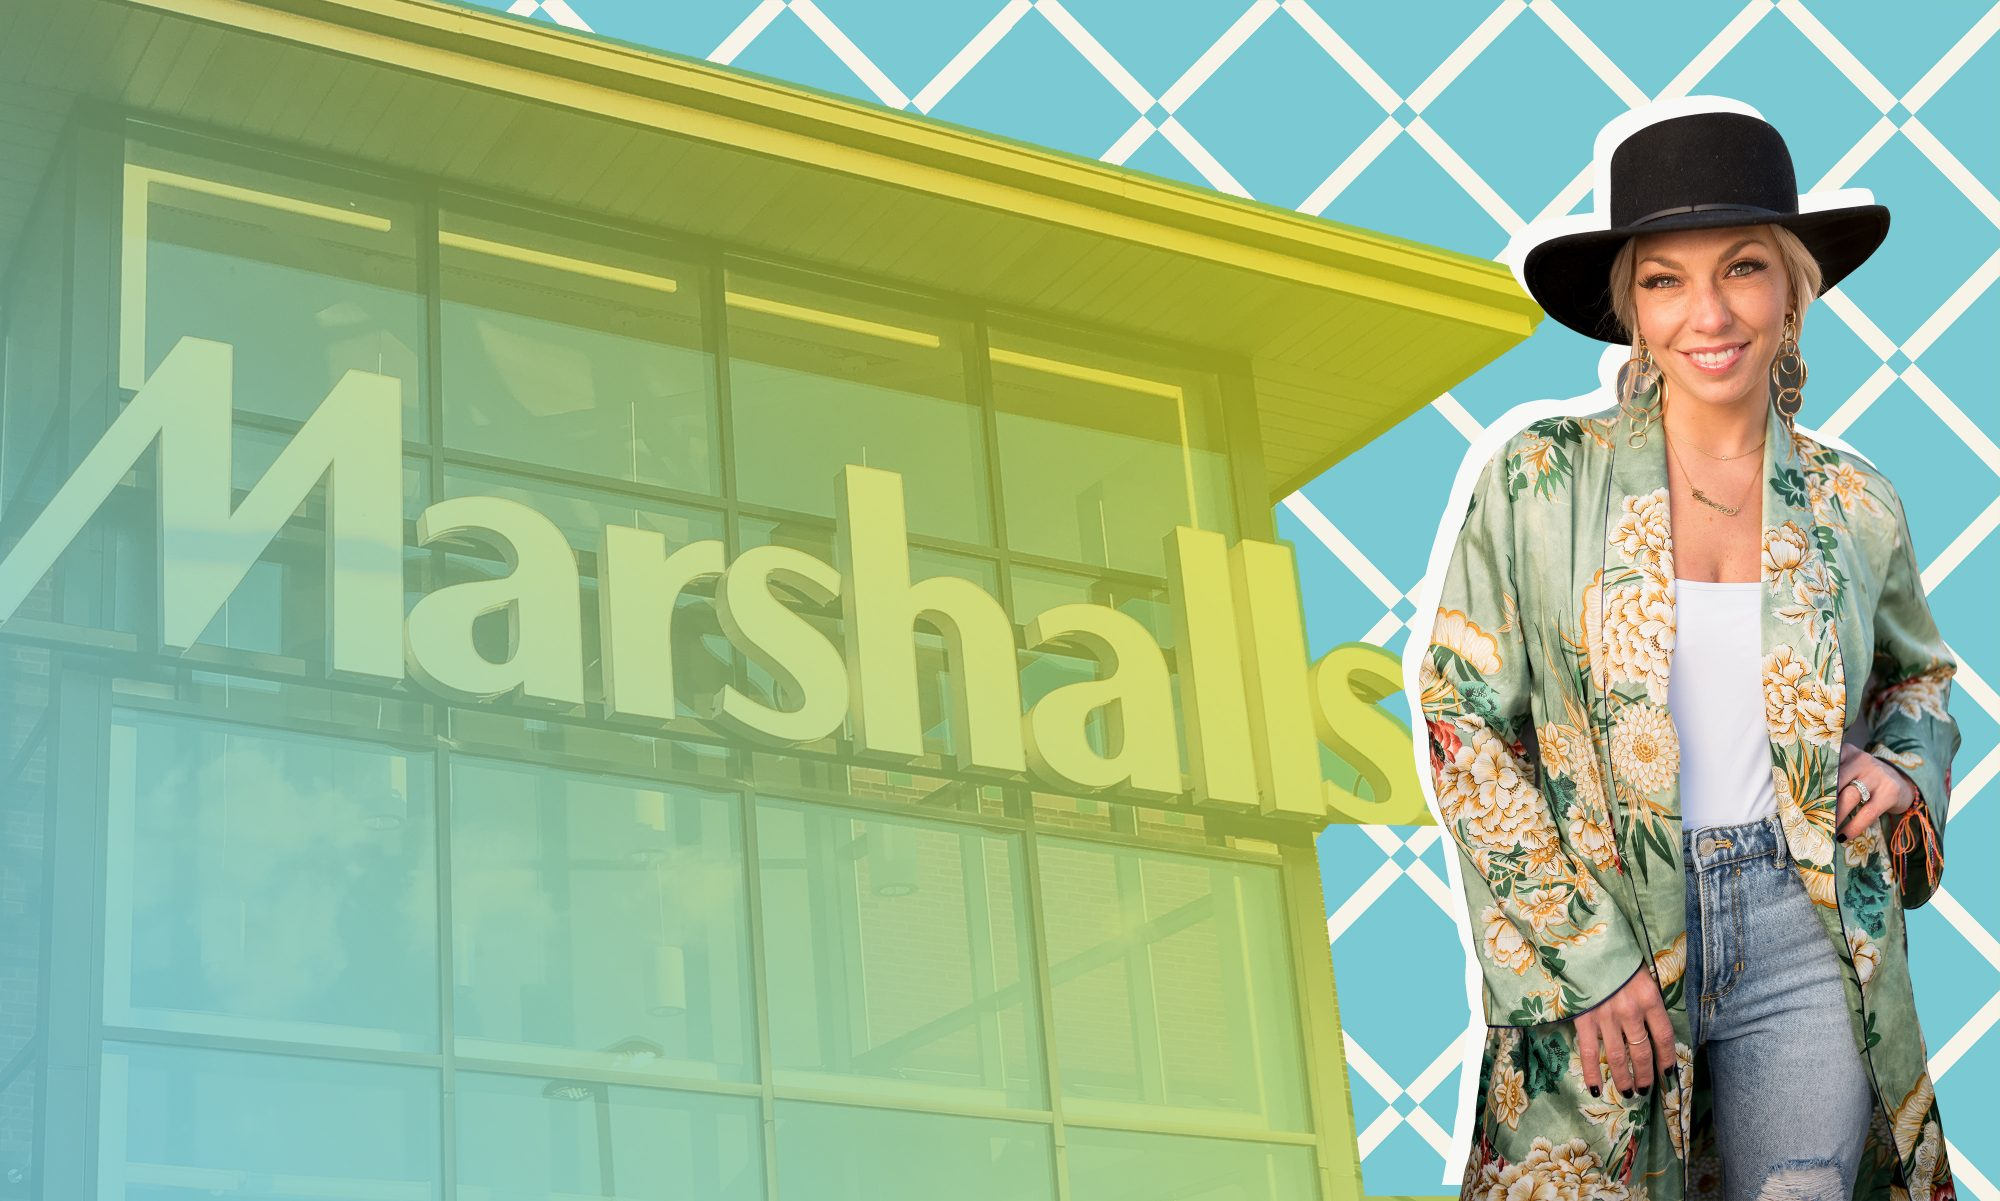 Marshalls Shopping Tips from a Celeb Stylist